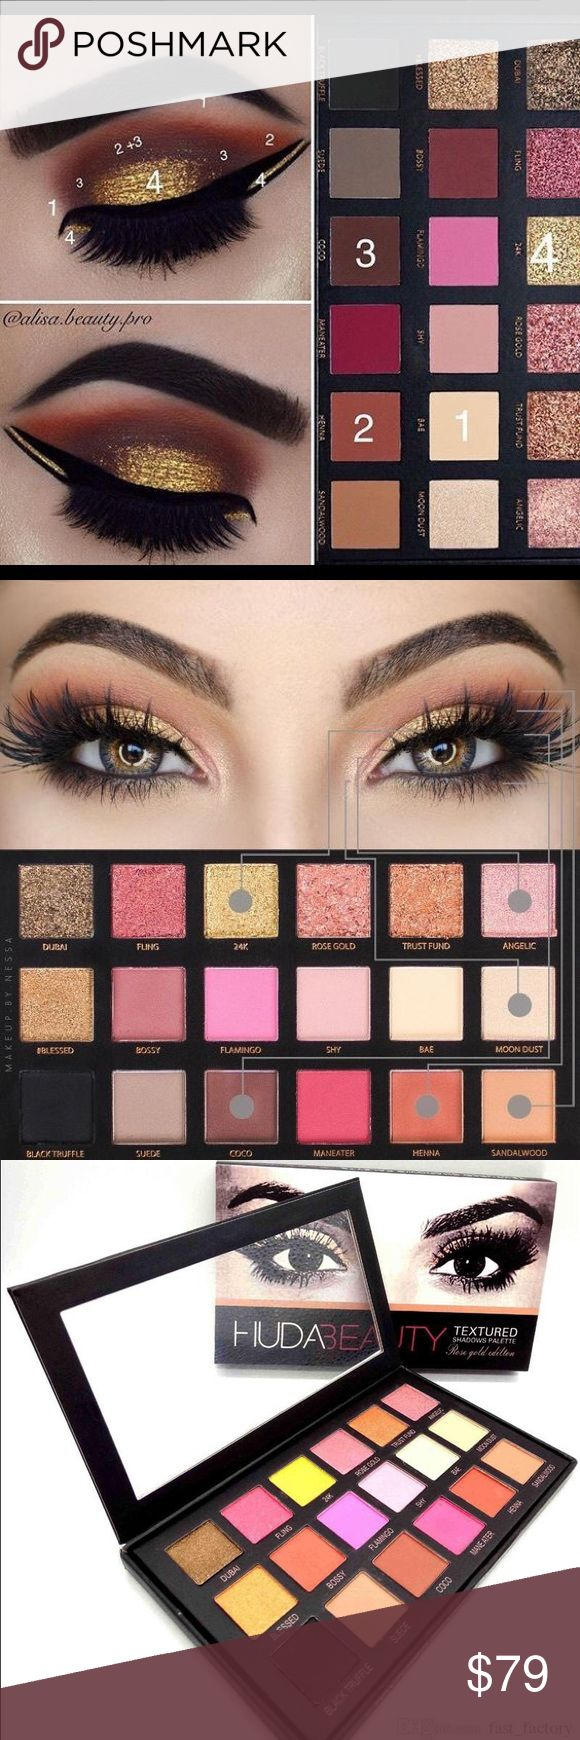 Hot selling huda beauty pellet on sale Huda beauty is a social media beauty diva and she has crazy fan following specialLy for this beautiful palette please Check out the video here https://youtu.be/k